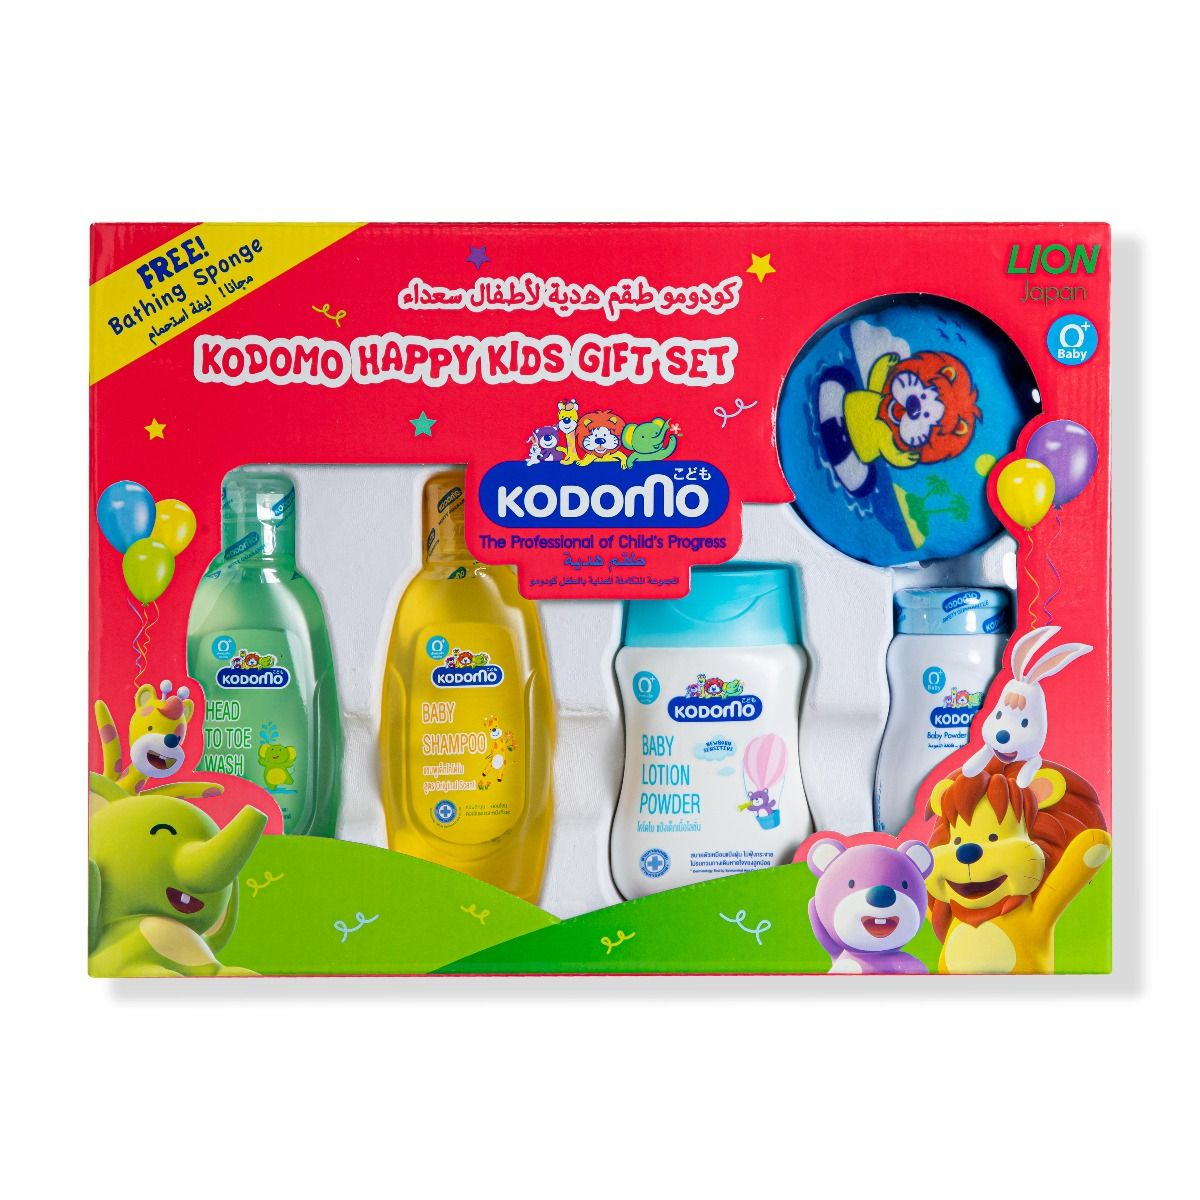 Kodomo Baby Gift Set Medium (5 pcs)